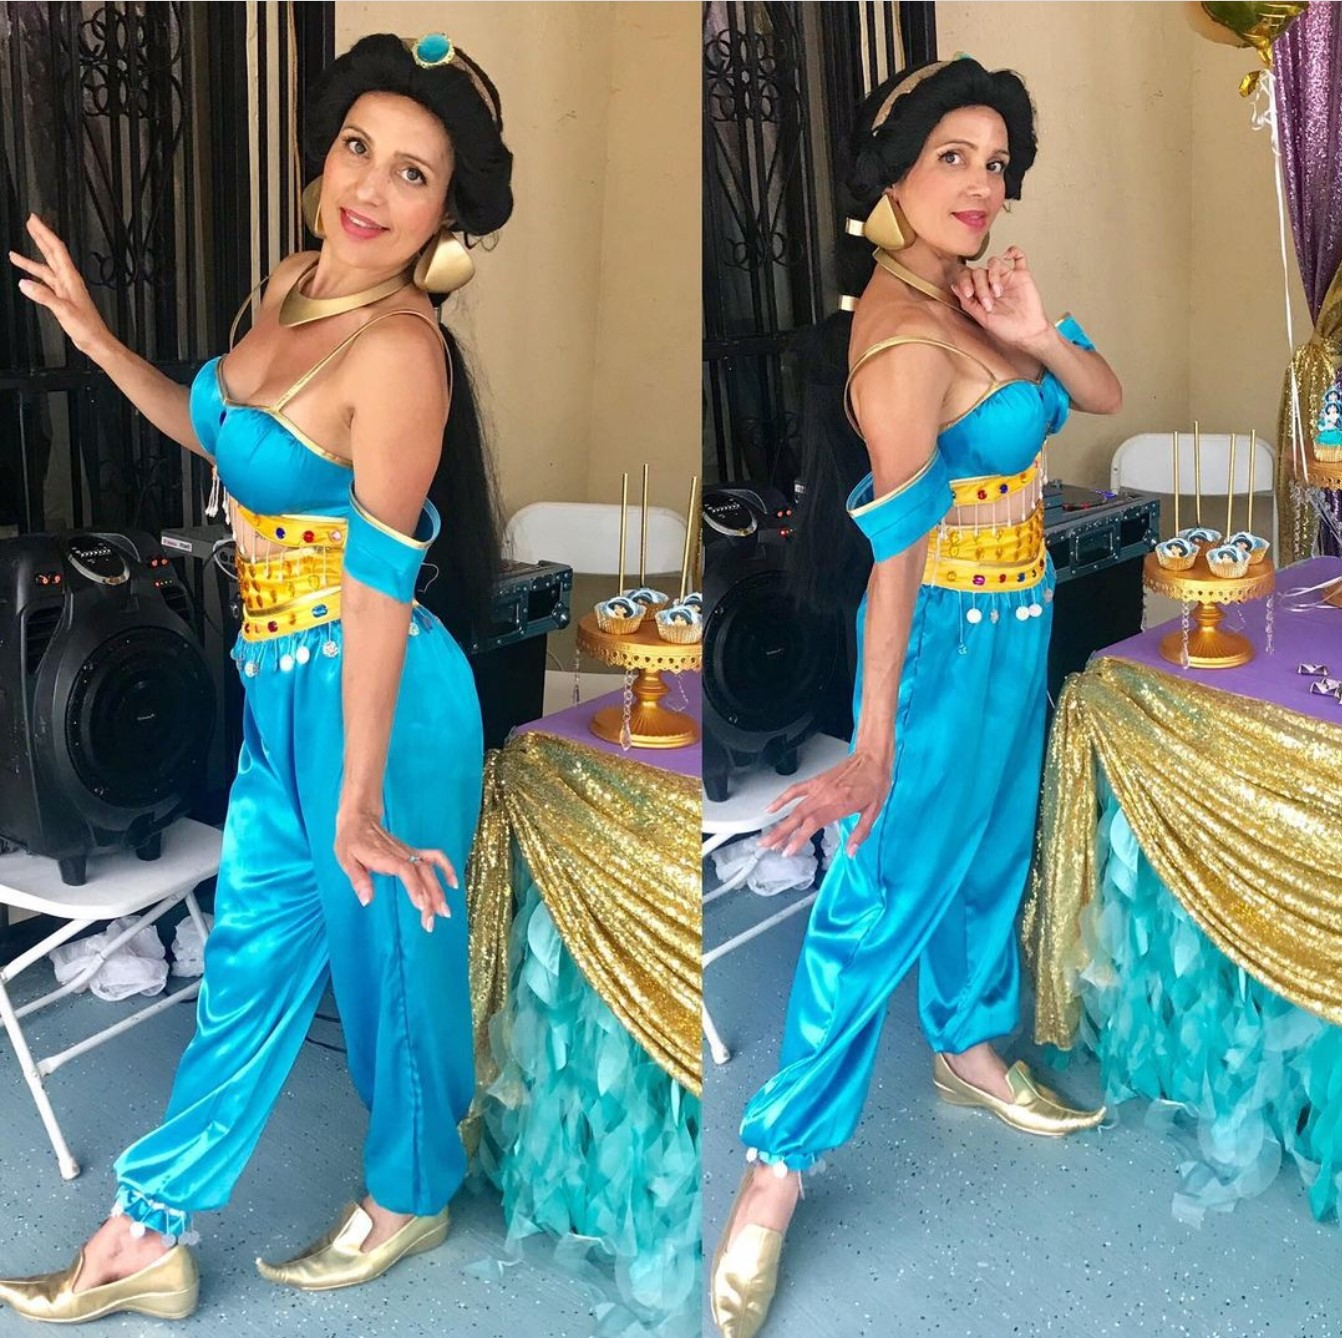 Jasmine Princess Party Character, Party Entertainments